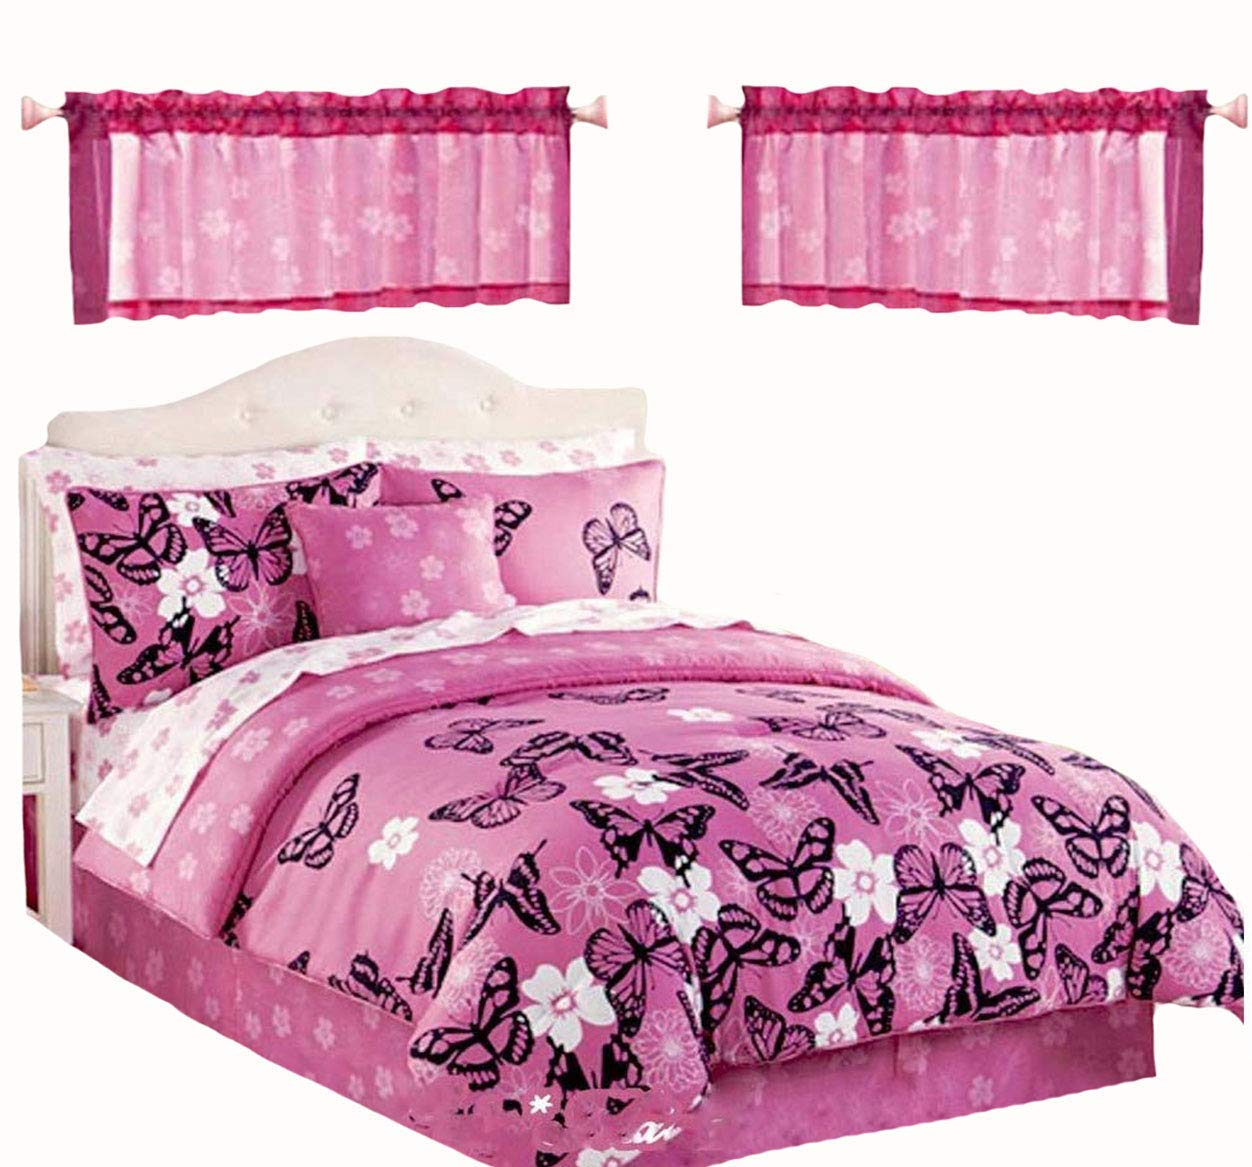 Cheap Black And Pink Comforter Set Find Black And Pink Comforter Set Deals On Line At Alibaba Com